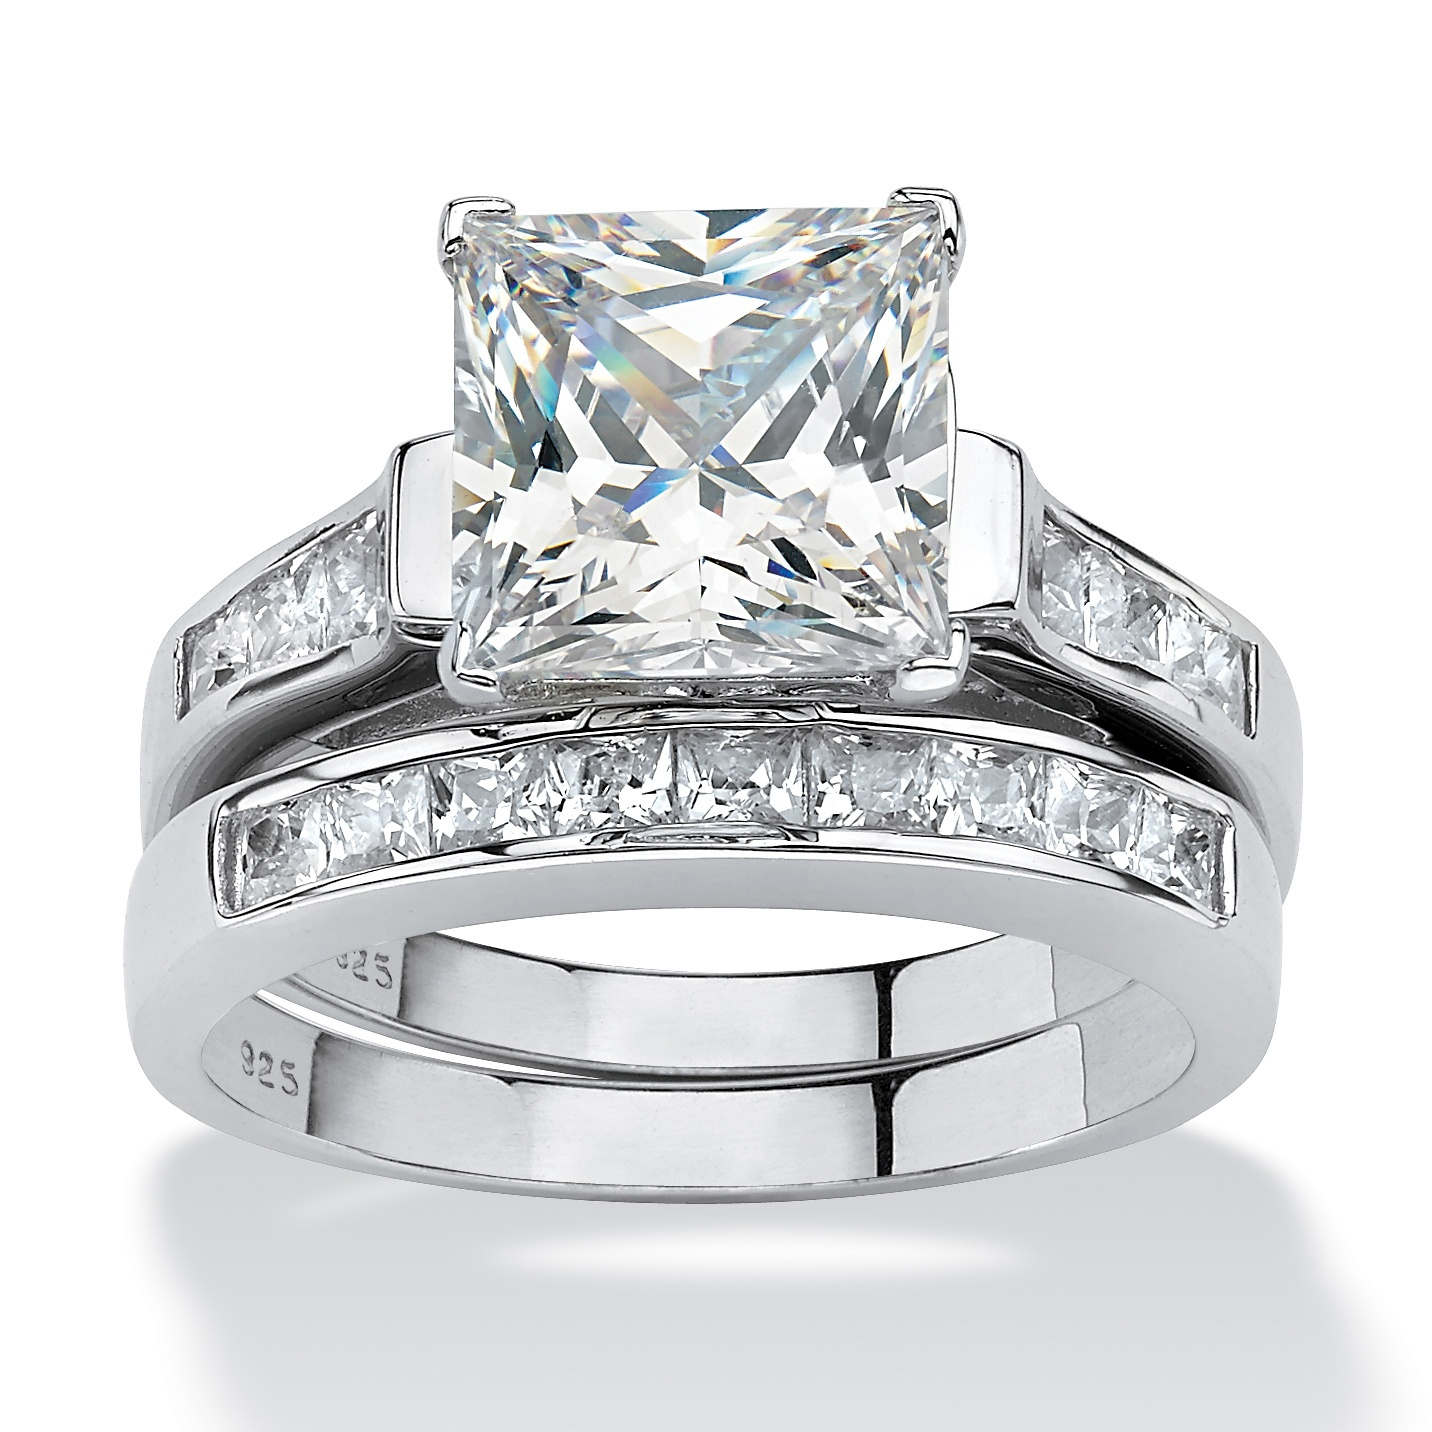 395 TCW PrincessCut Cubic Zirconia TwoPiece Bridal Set in Platinum over Sterling Silver at